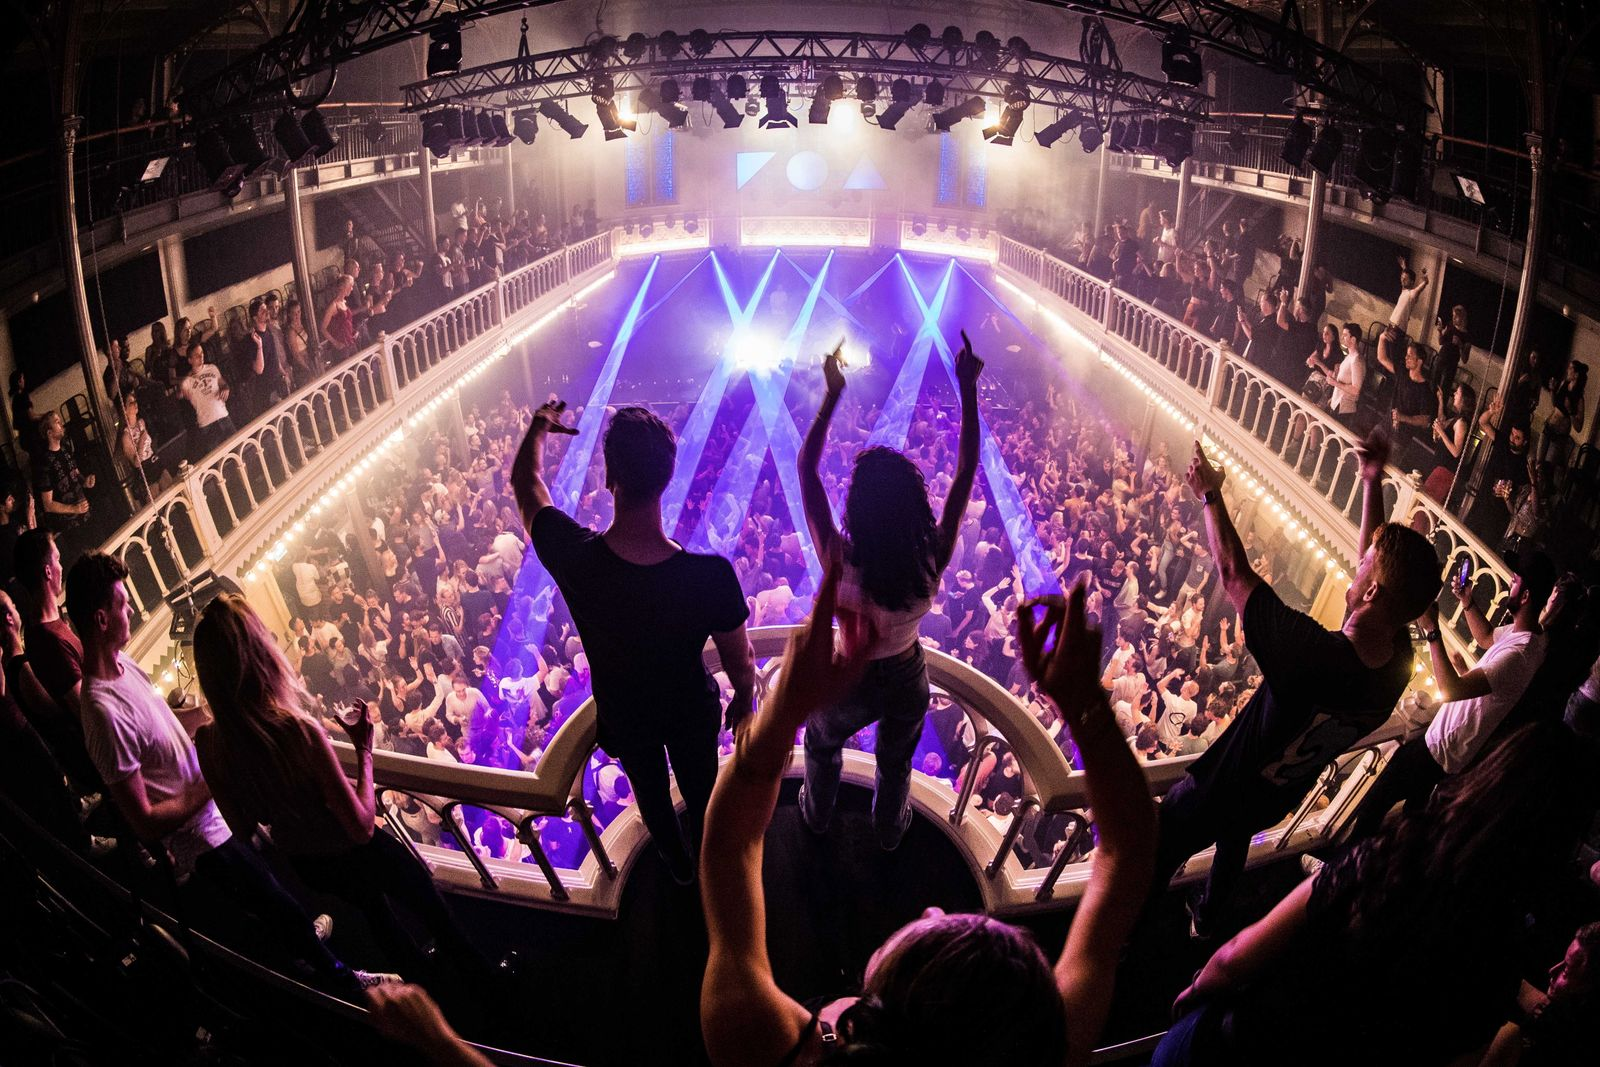 Music venue Paradiso in Amsterdam reopens at full capacity